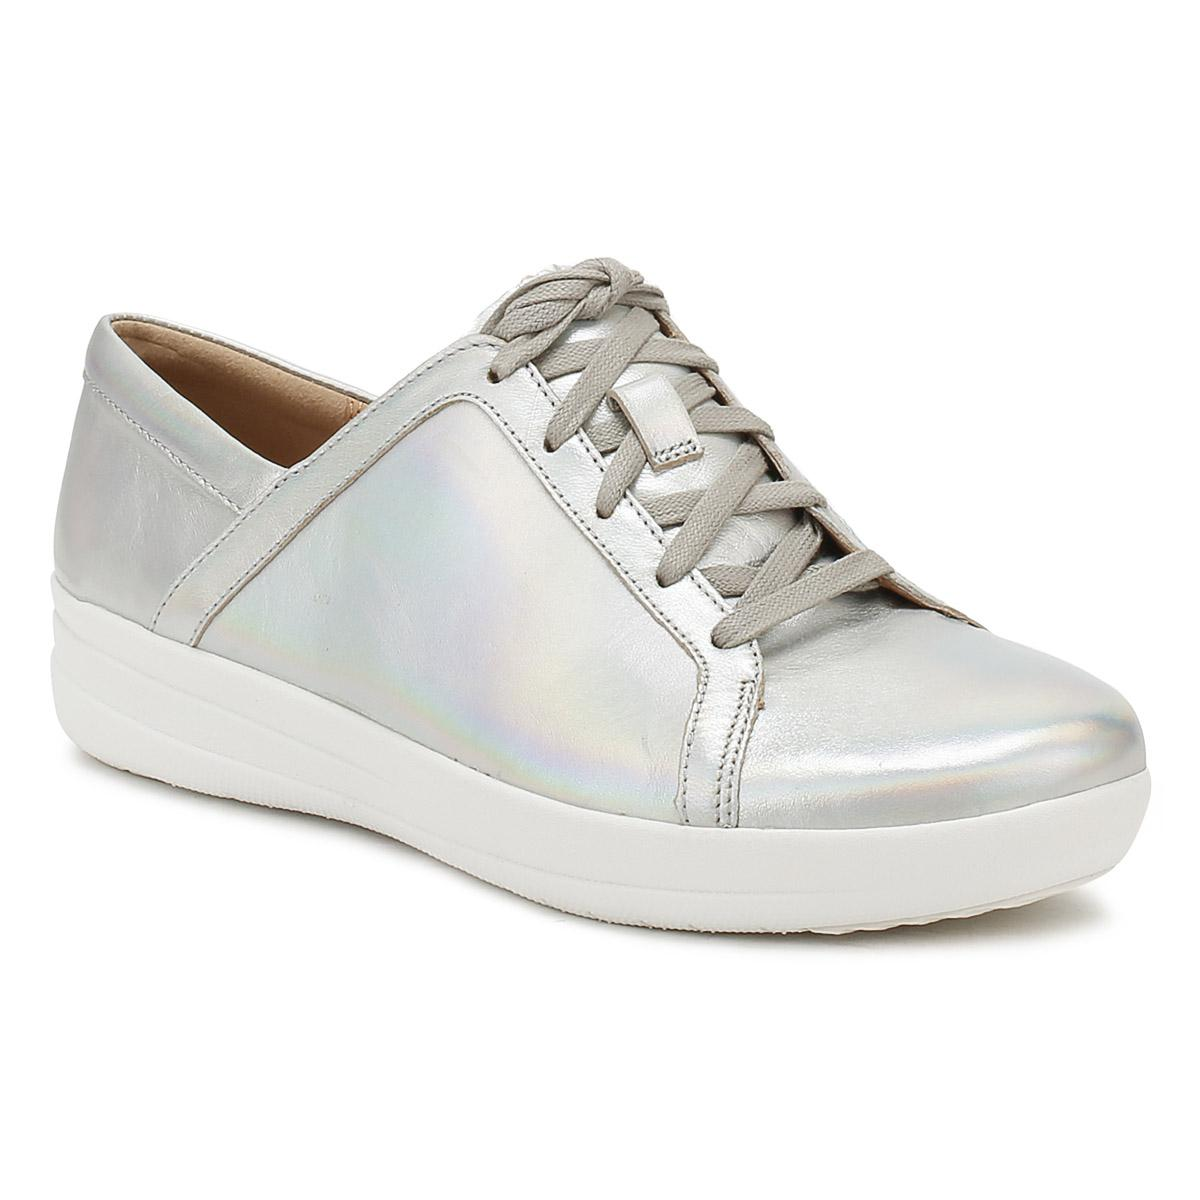 db323655a Lyst - Fitflop Womens Silver Iridescent F-sporty Ii Trainers in Metallic